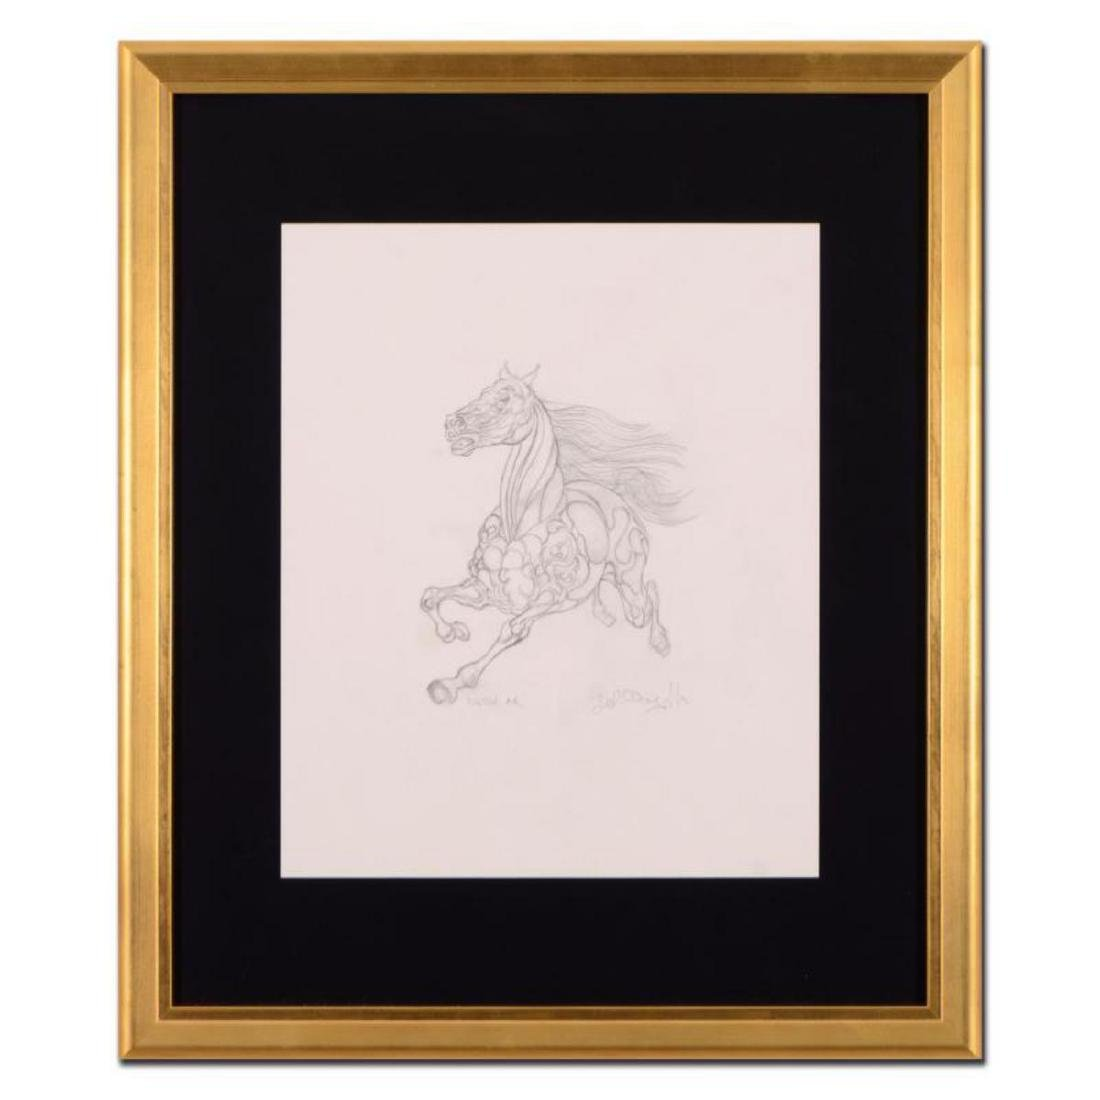 "Guillaume Azoulay - ""AR Sketch"" Framed Original"